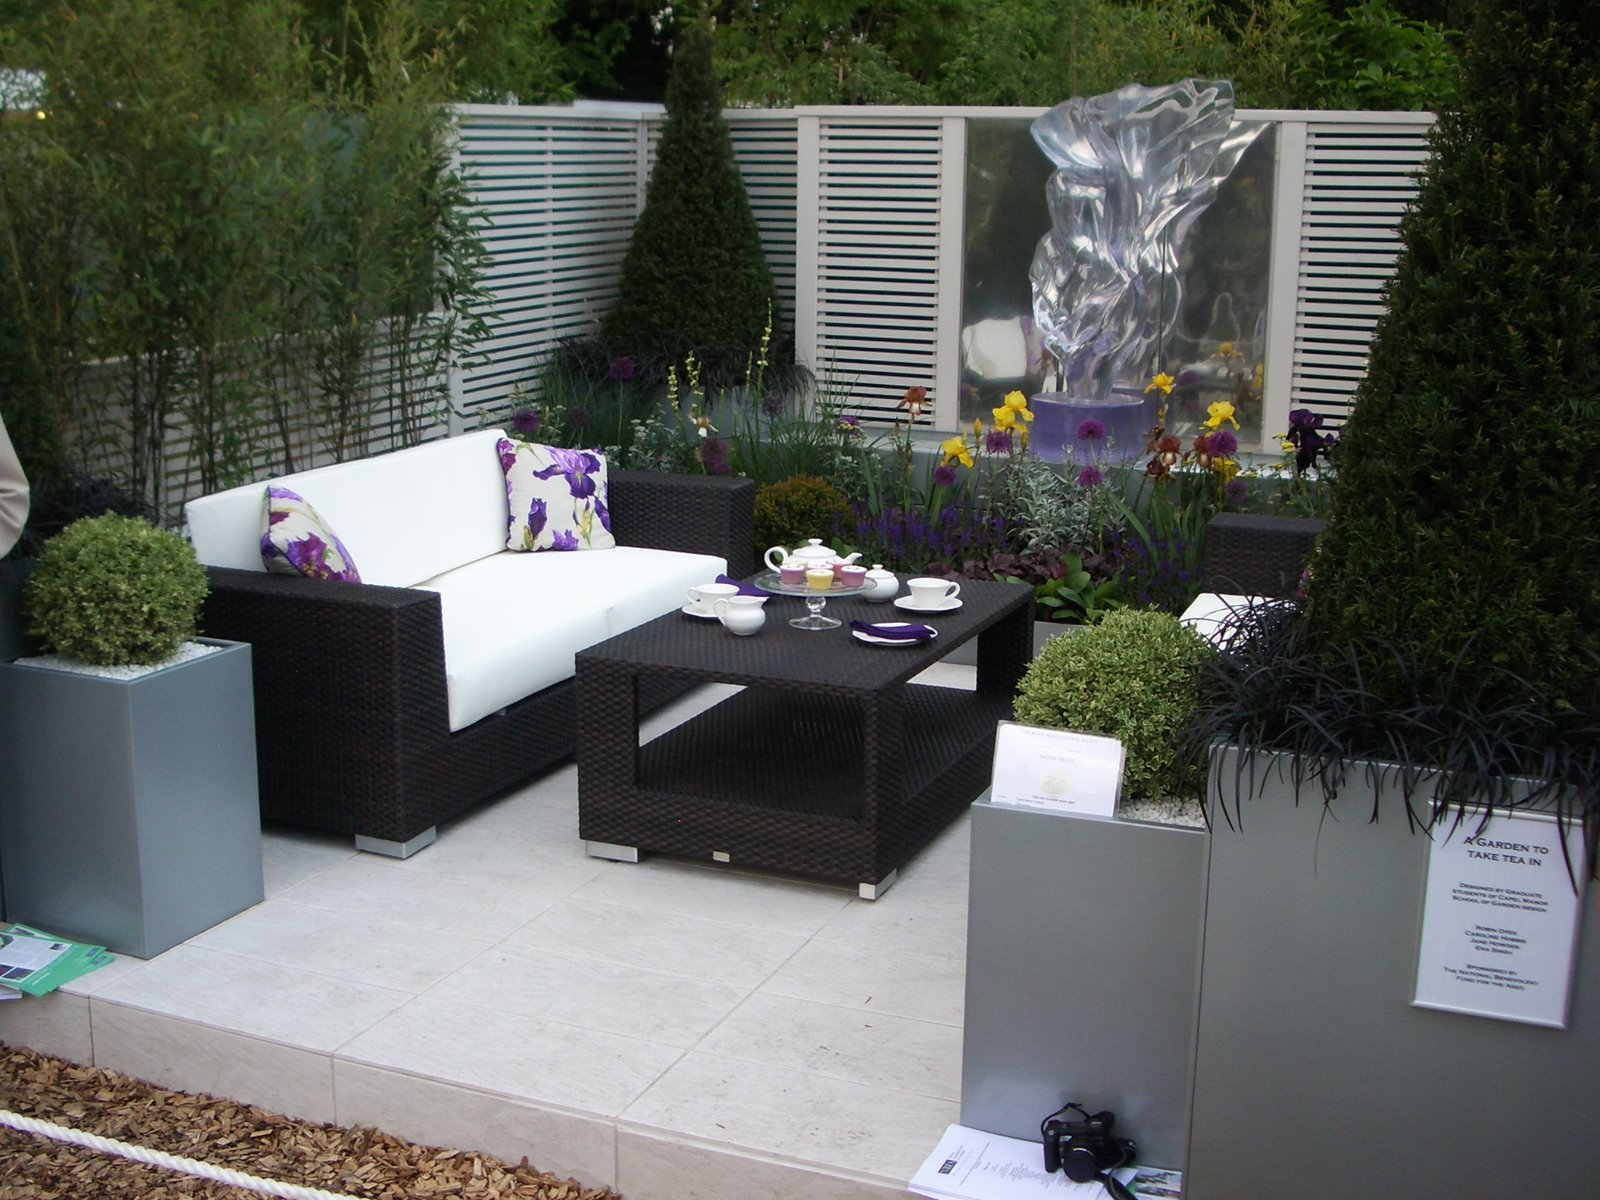 Beau Adding Loveseat To Complete Seating Unit Of Small Patio With Beautiful  Plants Surrounding